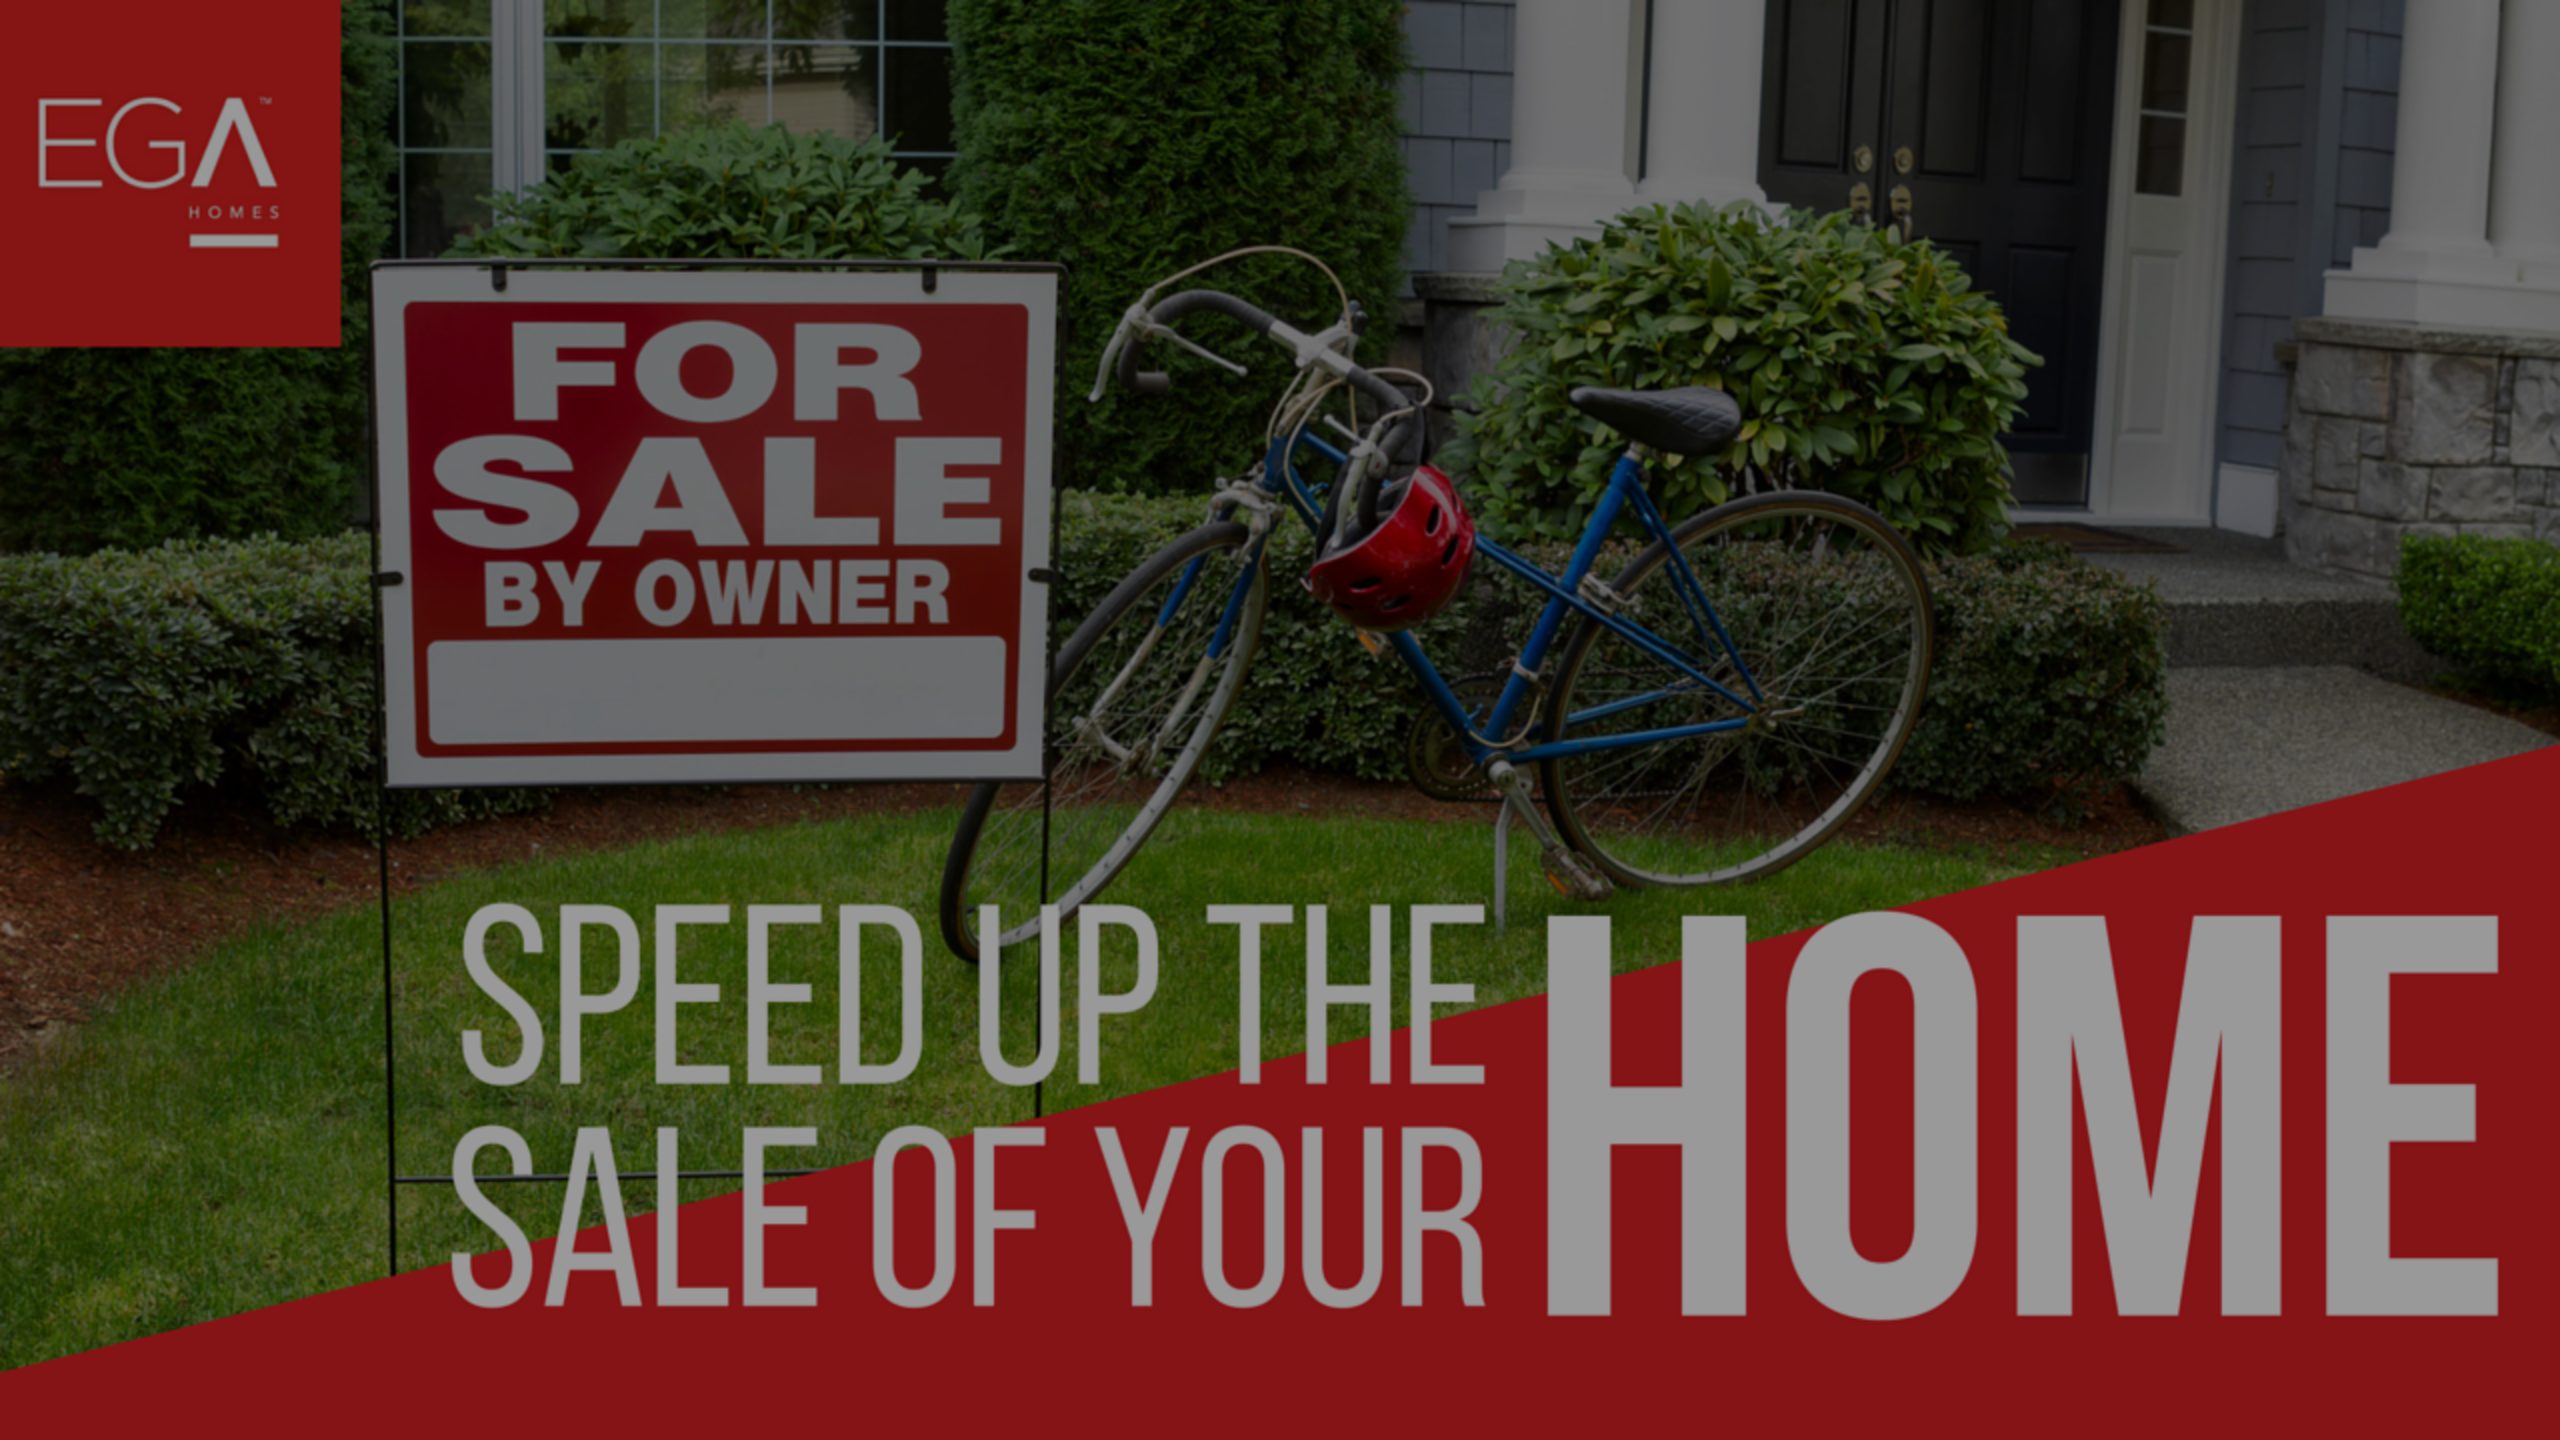 5 Ways to Speed Up the Sale of Your Home